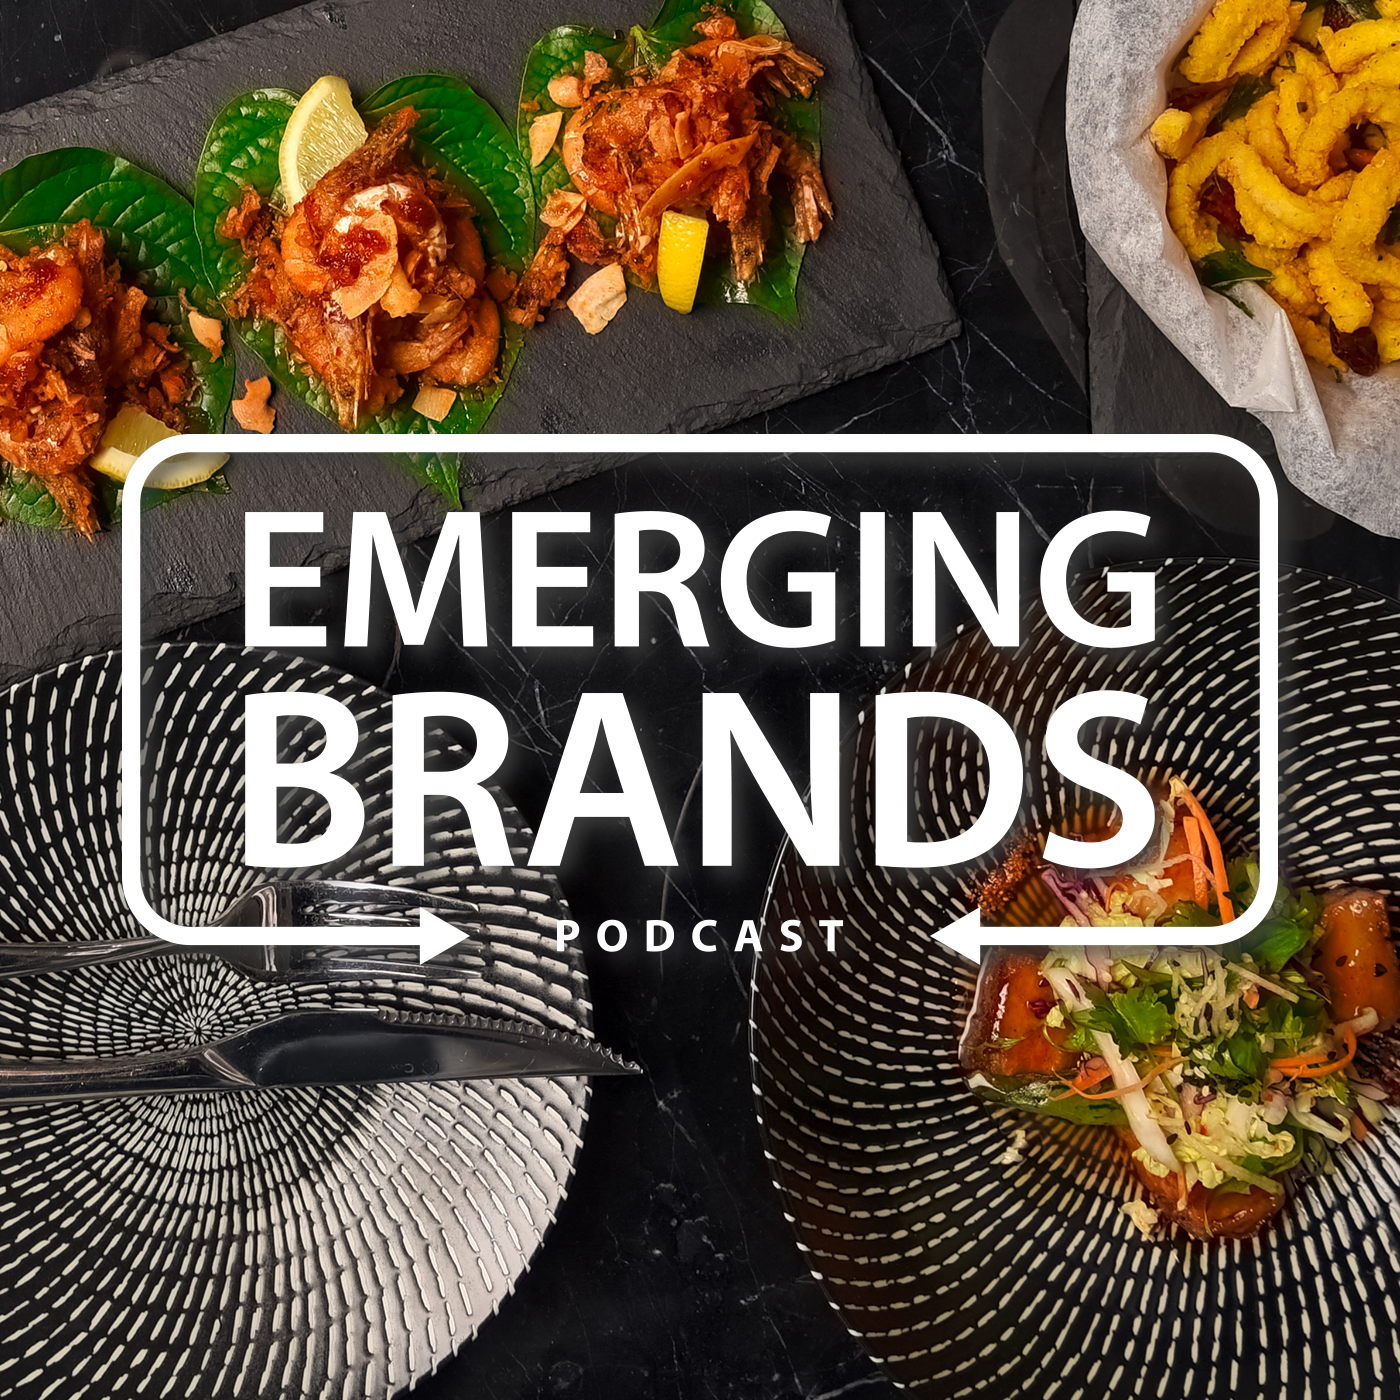 Emerging Brands  insights, ideas and action items from the best